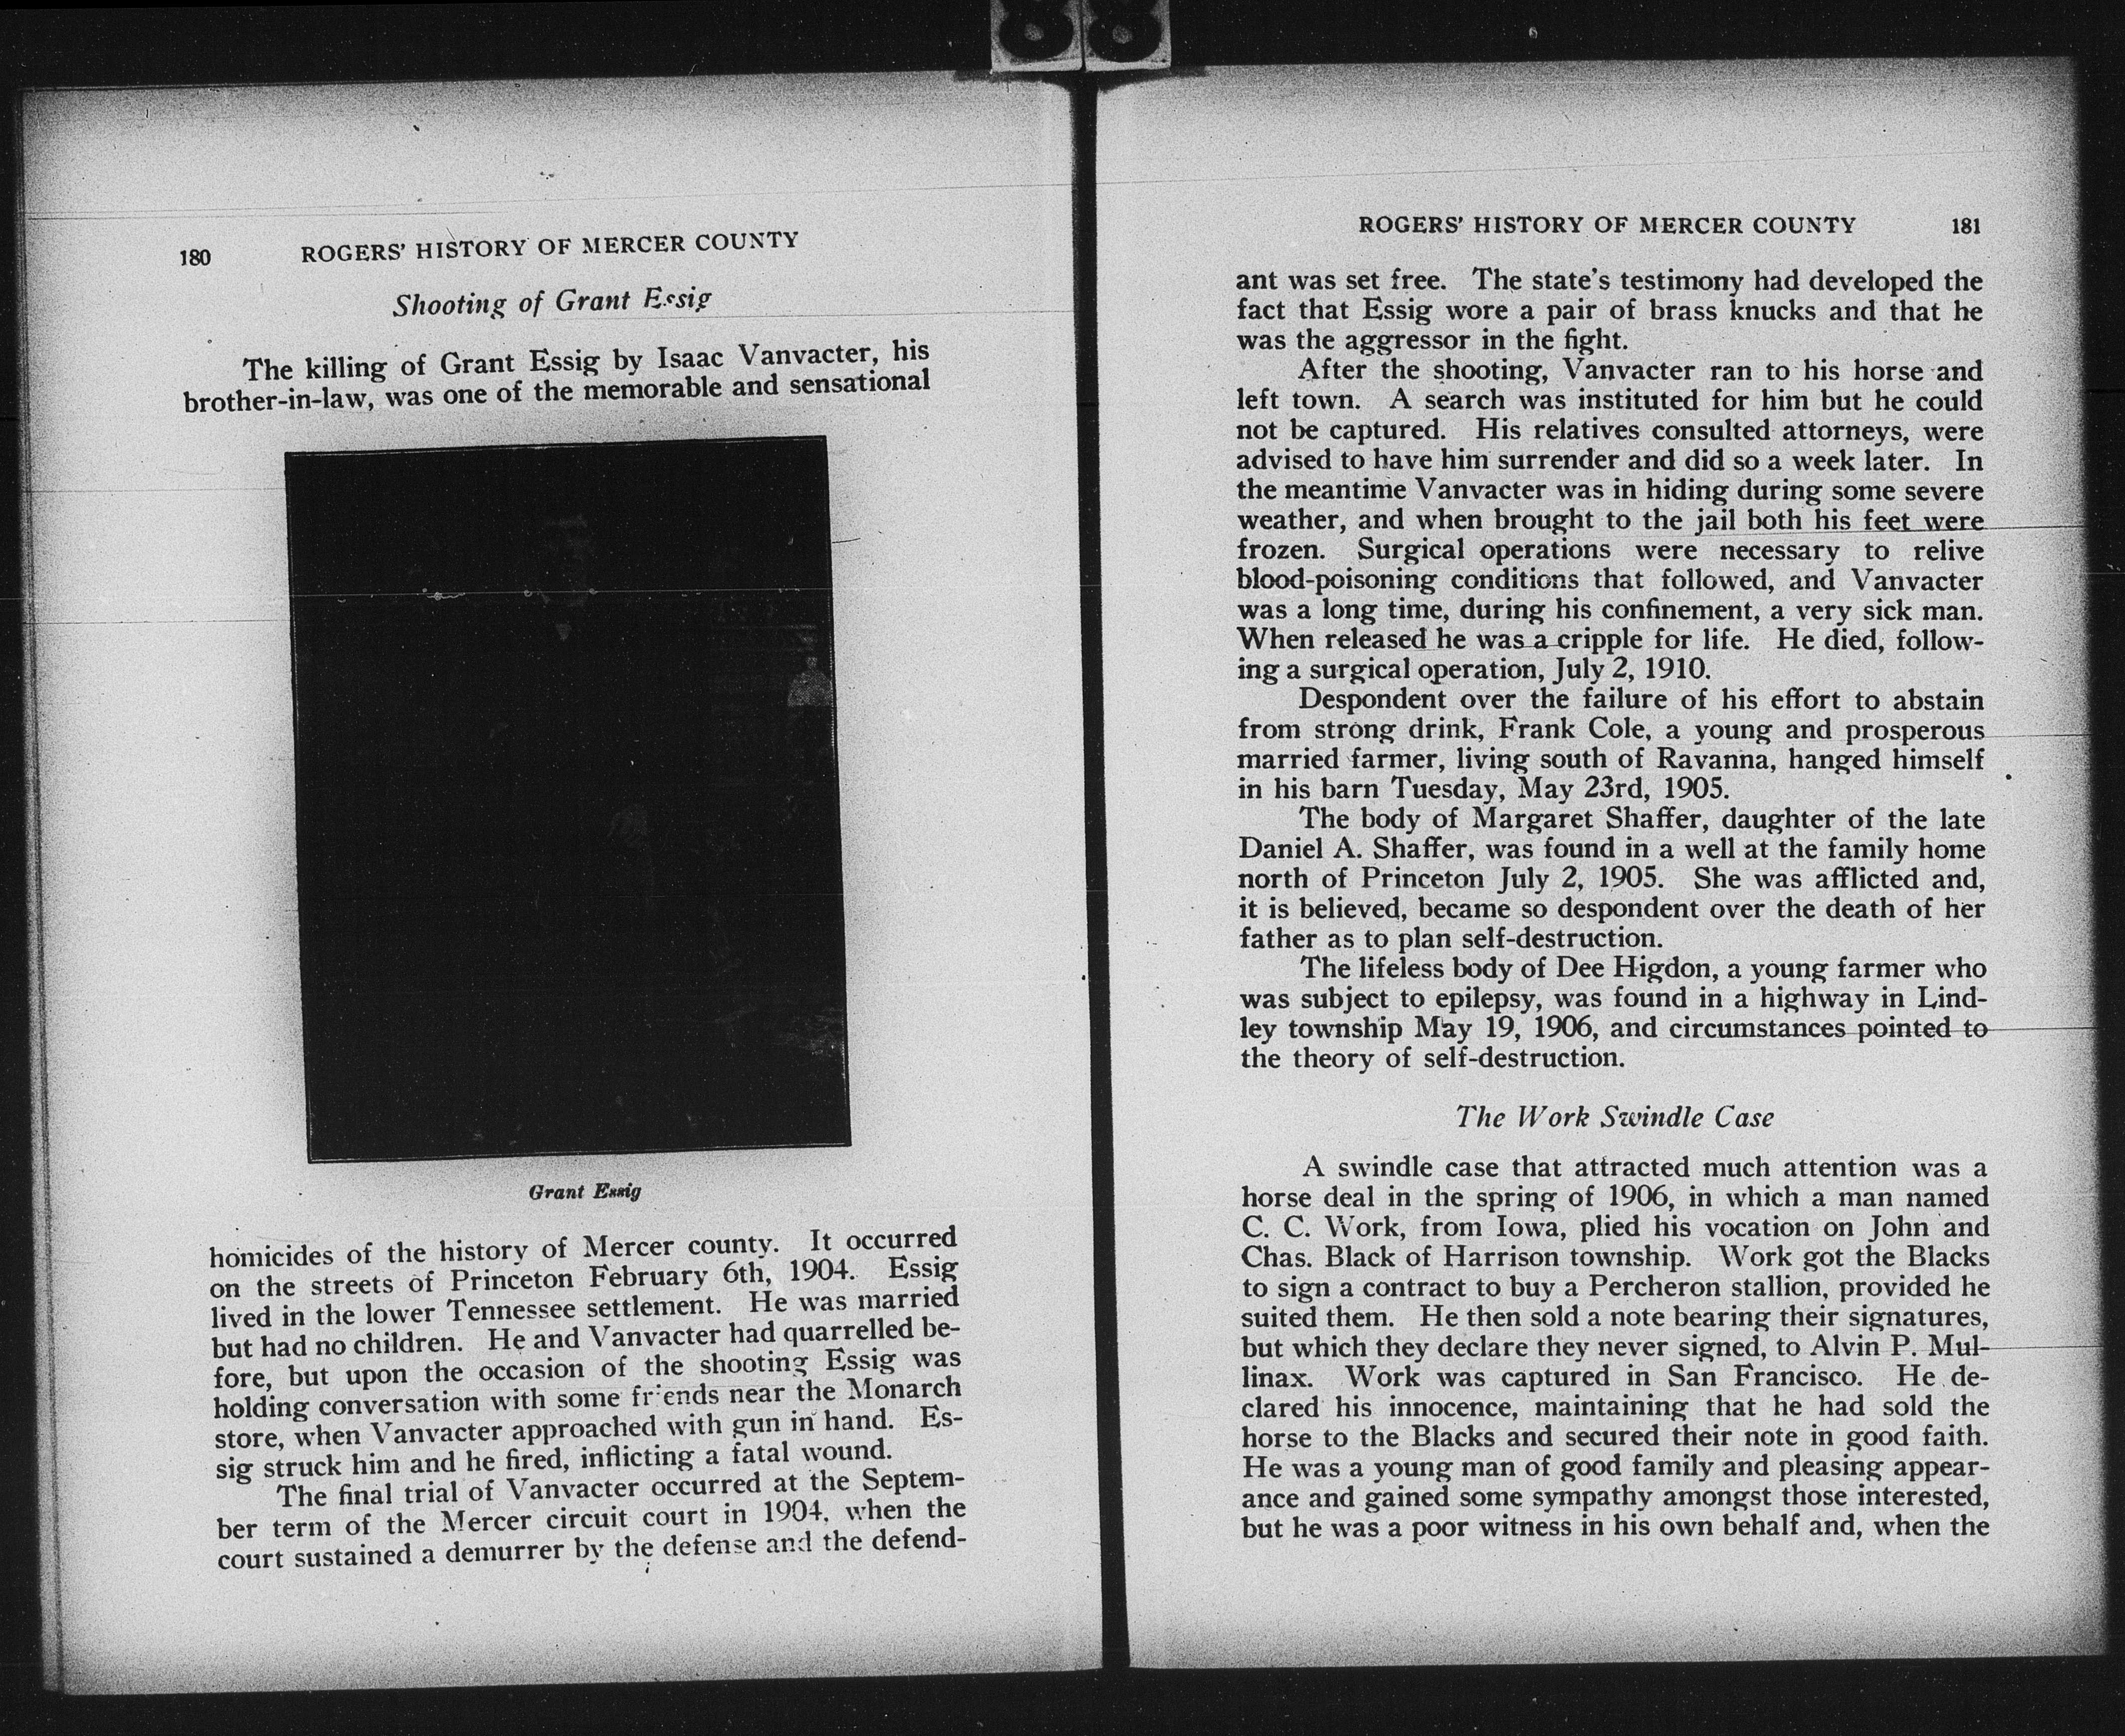 Index of /mercer/books/Rogers,1911/Ch-12,Crime